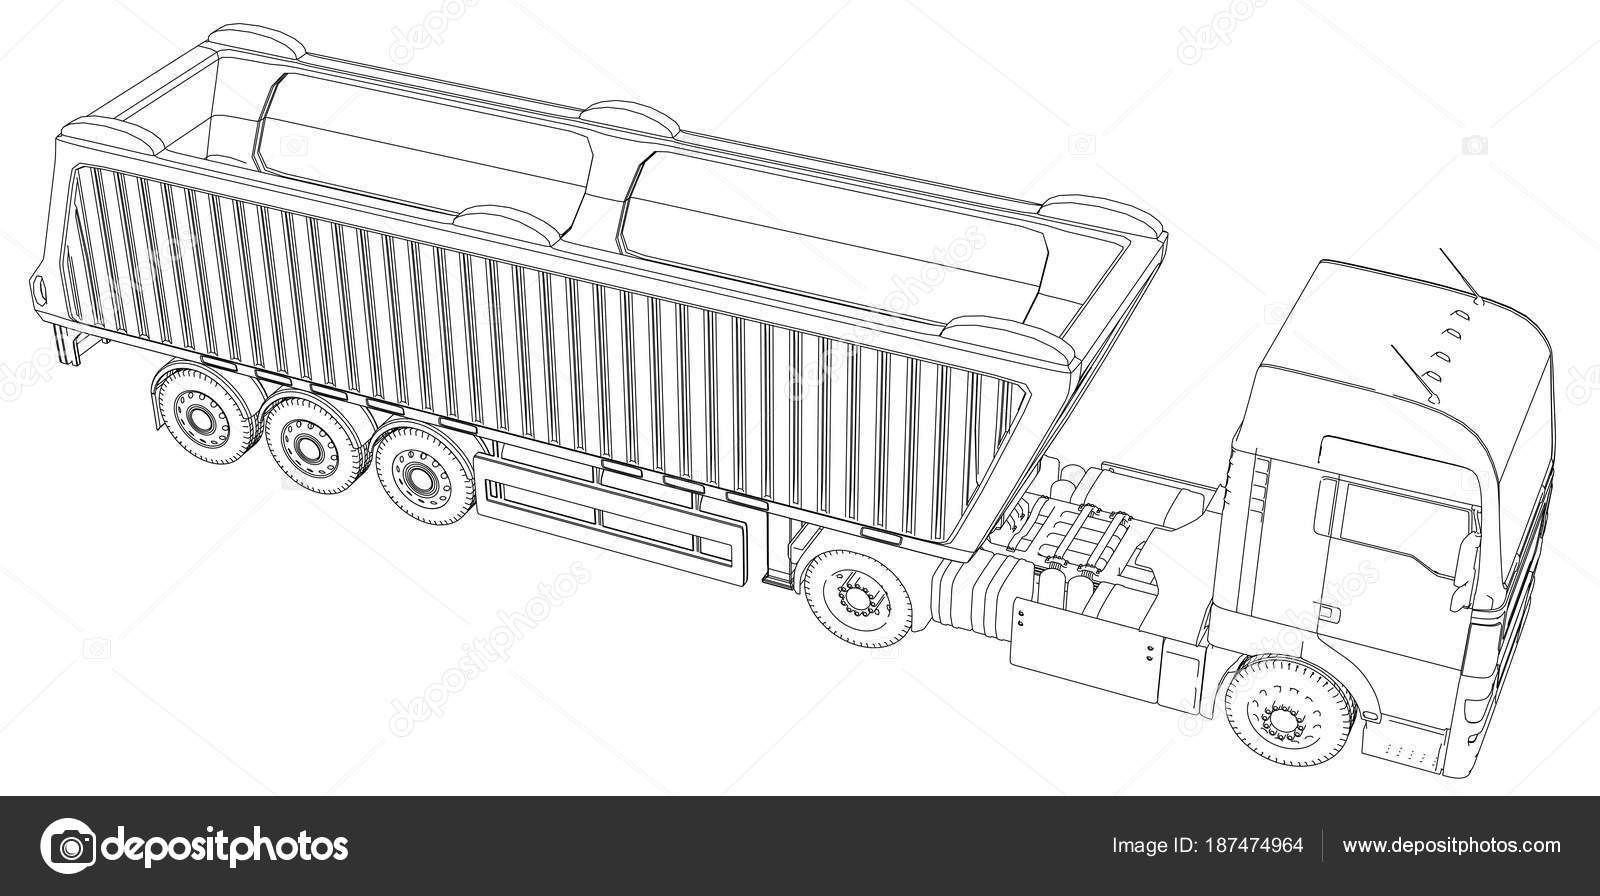 Images Tractor Trailer Sketch